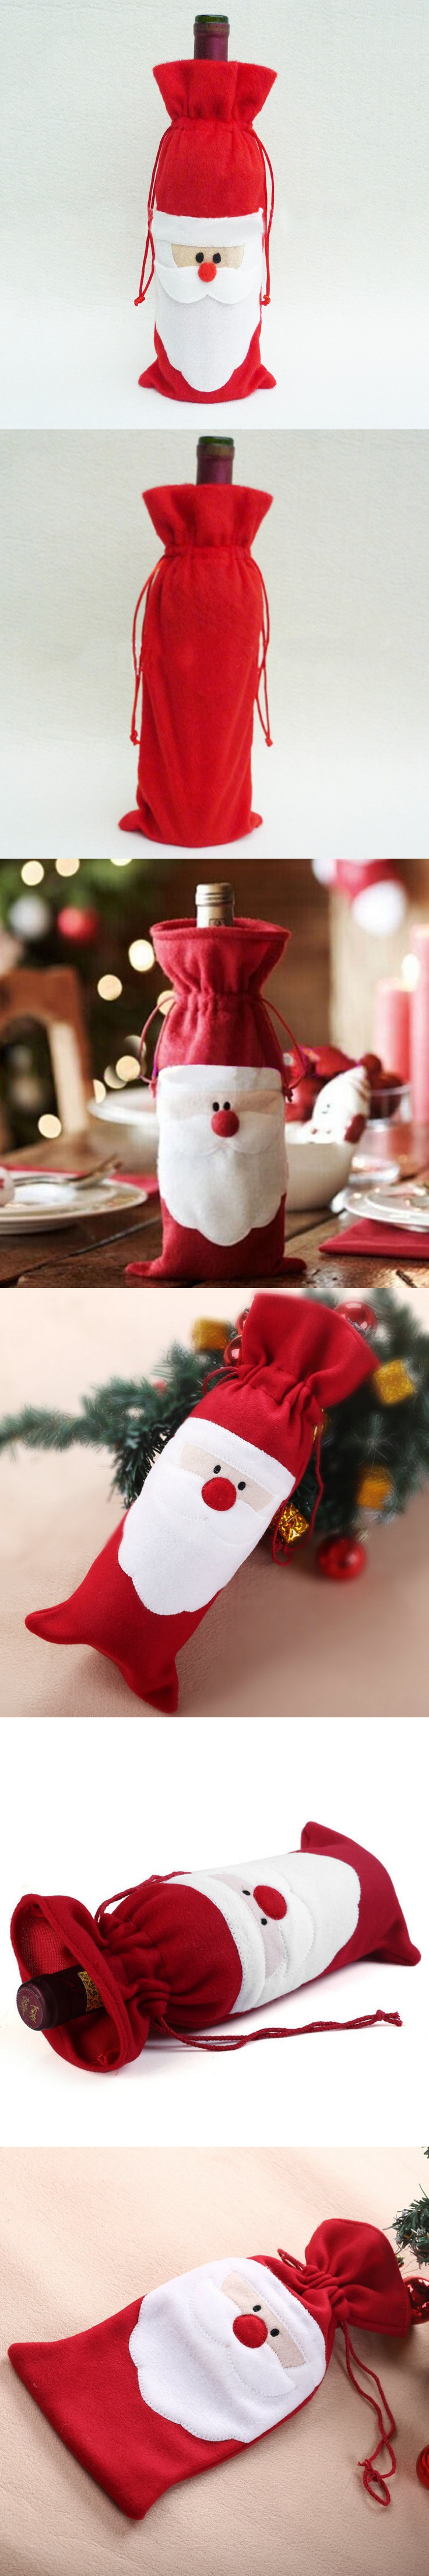 New Year 2015 Red Wine Bottle Cover Bags Christmas Dinner Table Decoration Home Party Decors Santa Claus Christmas Free Shipping